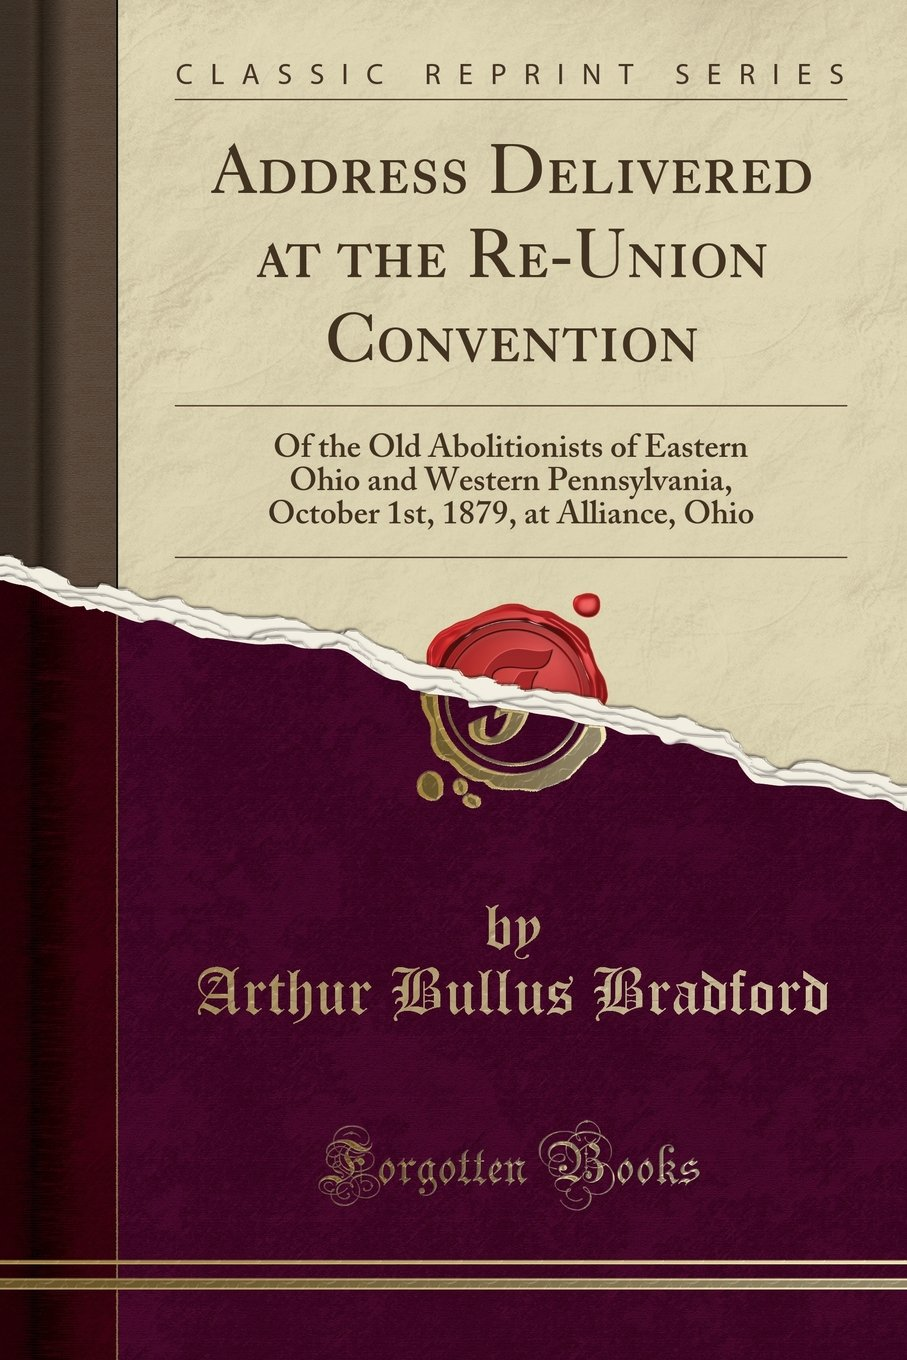 Read Online Address Delivered at the Re-Union Convention: Of the Old Abolitionists of Eastern Ohio and Western Pennsylvania, October 1st, 1879, at Alliance, Ohio (Classic Reprint) PDF